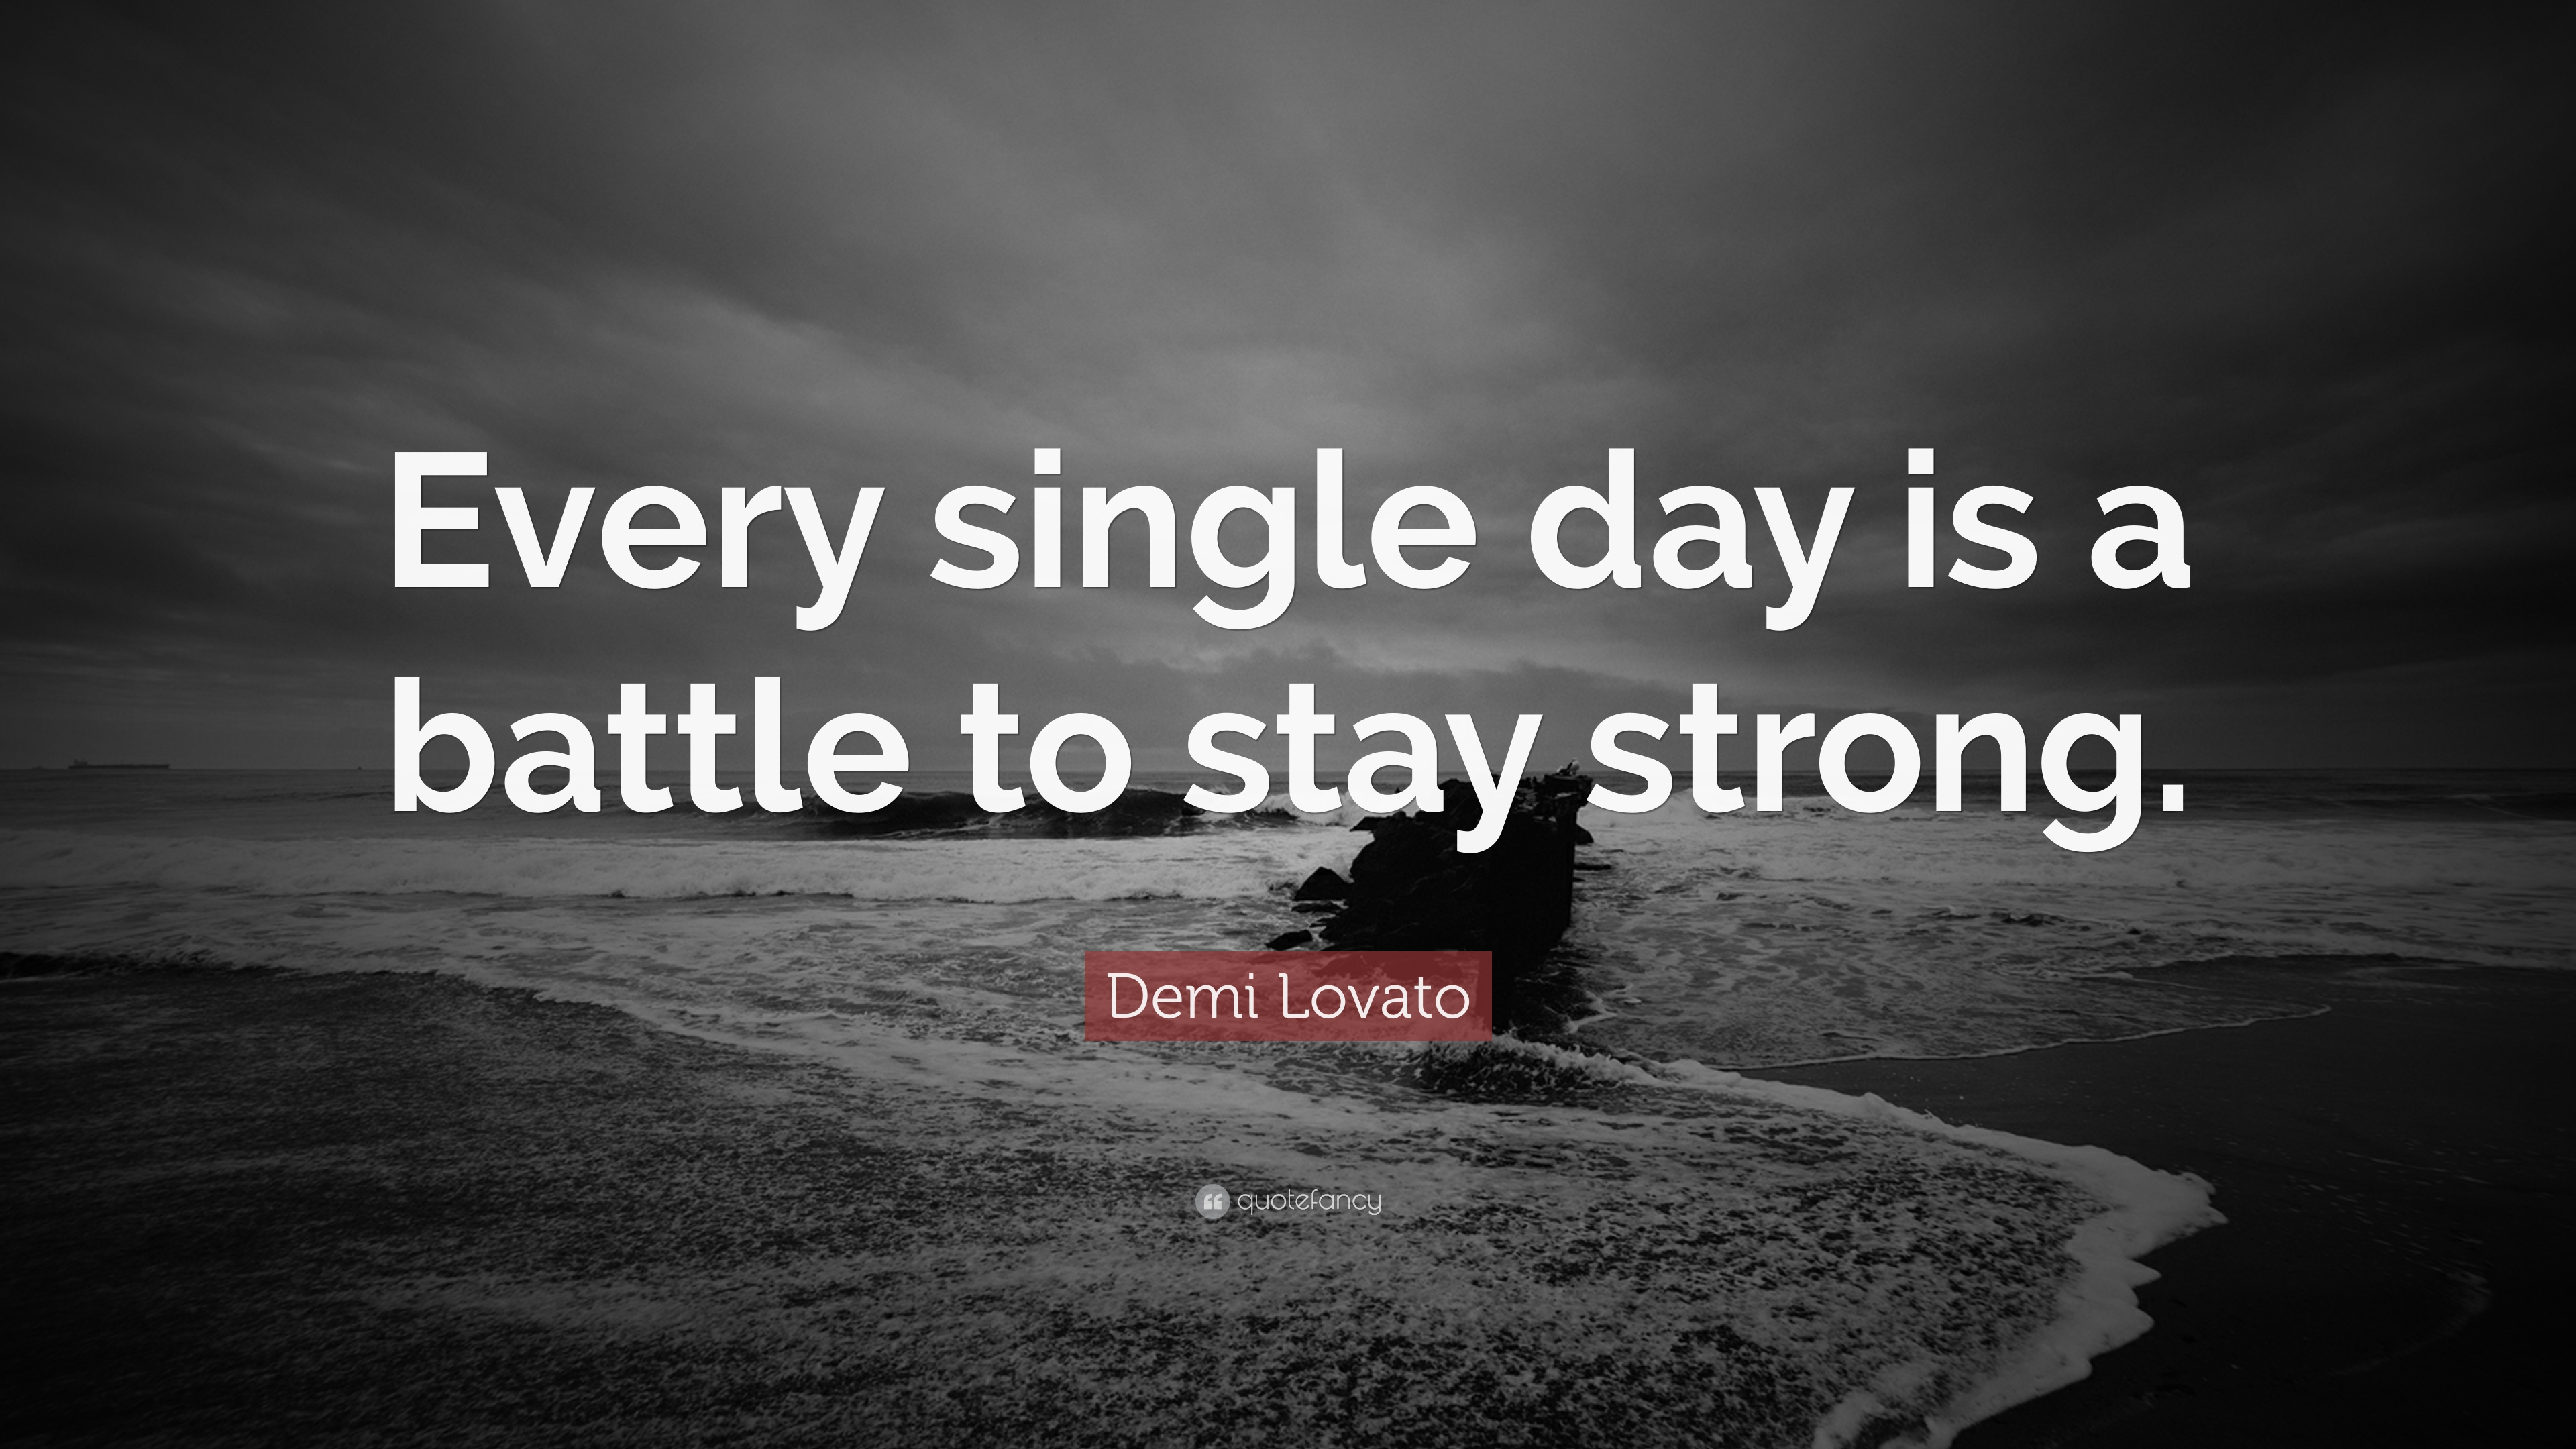 Demi lovato quote every single day is a battle to stay strong demi lovato quote every single day is a battle to stay strong voltagebd Images